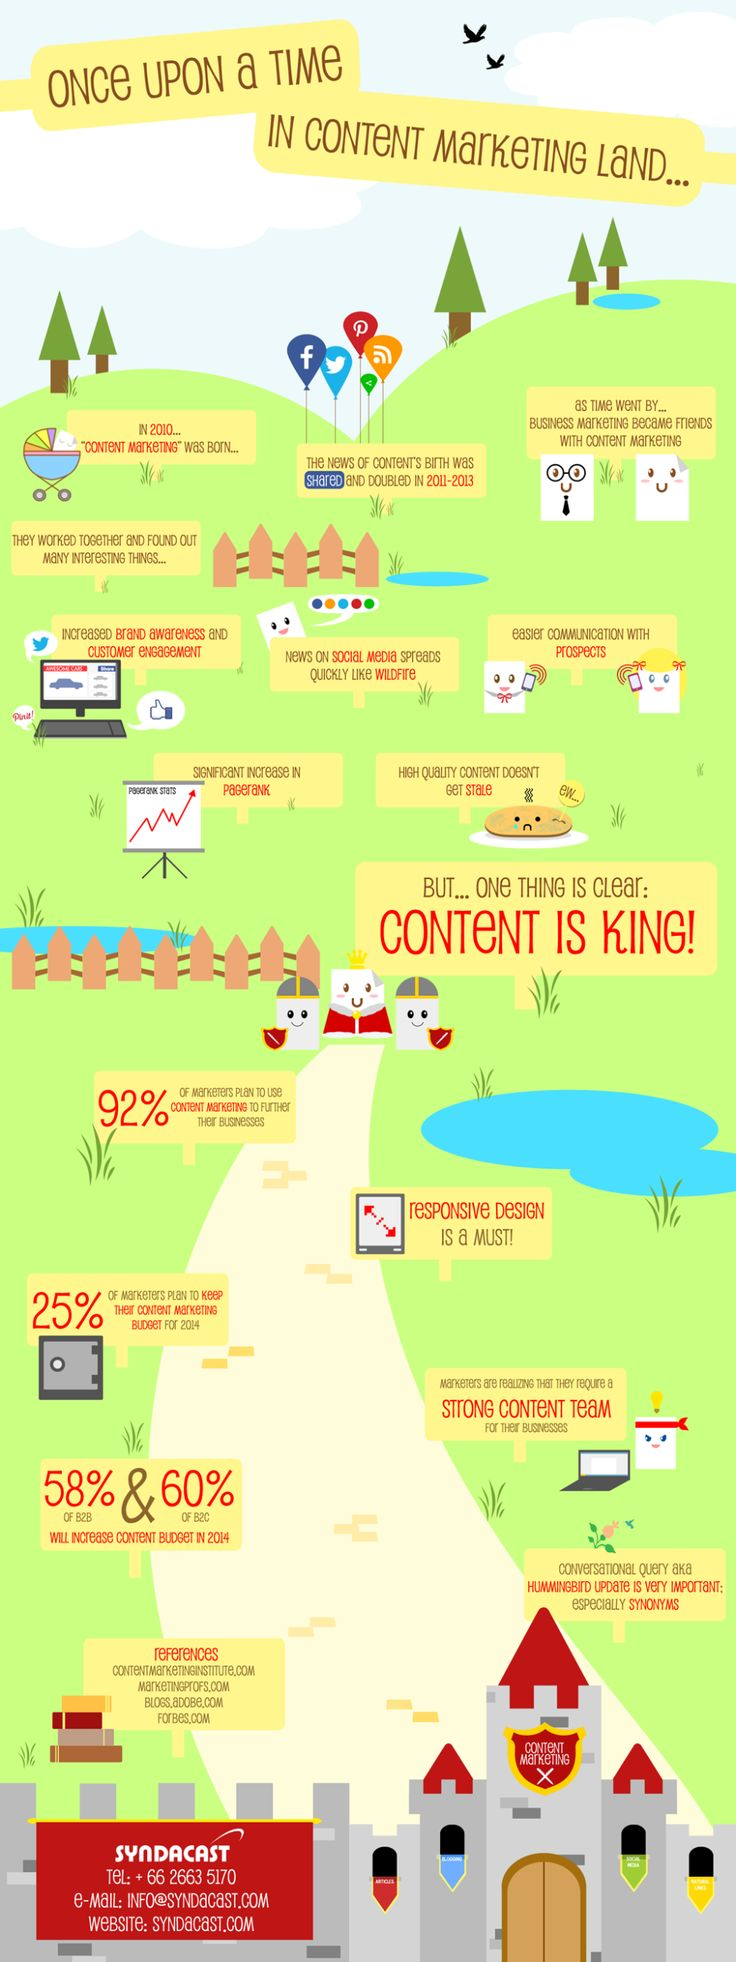 Once upon a time in Content Marketing Land ... #infographic